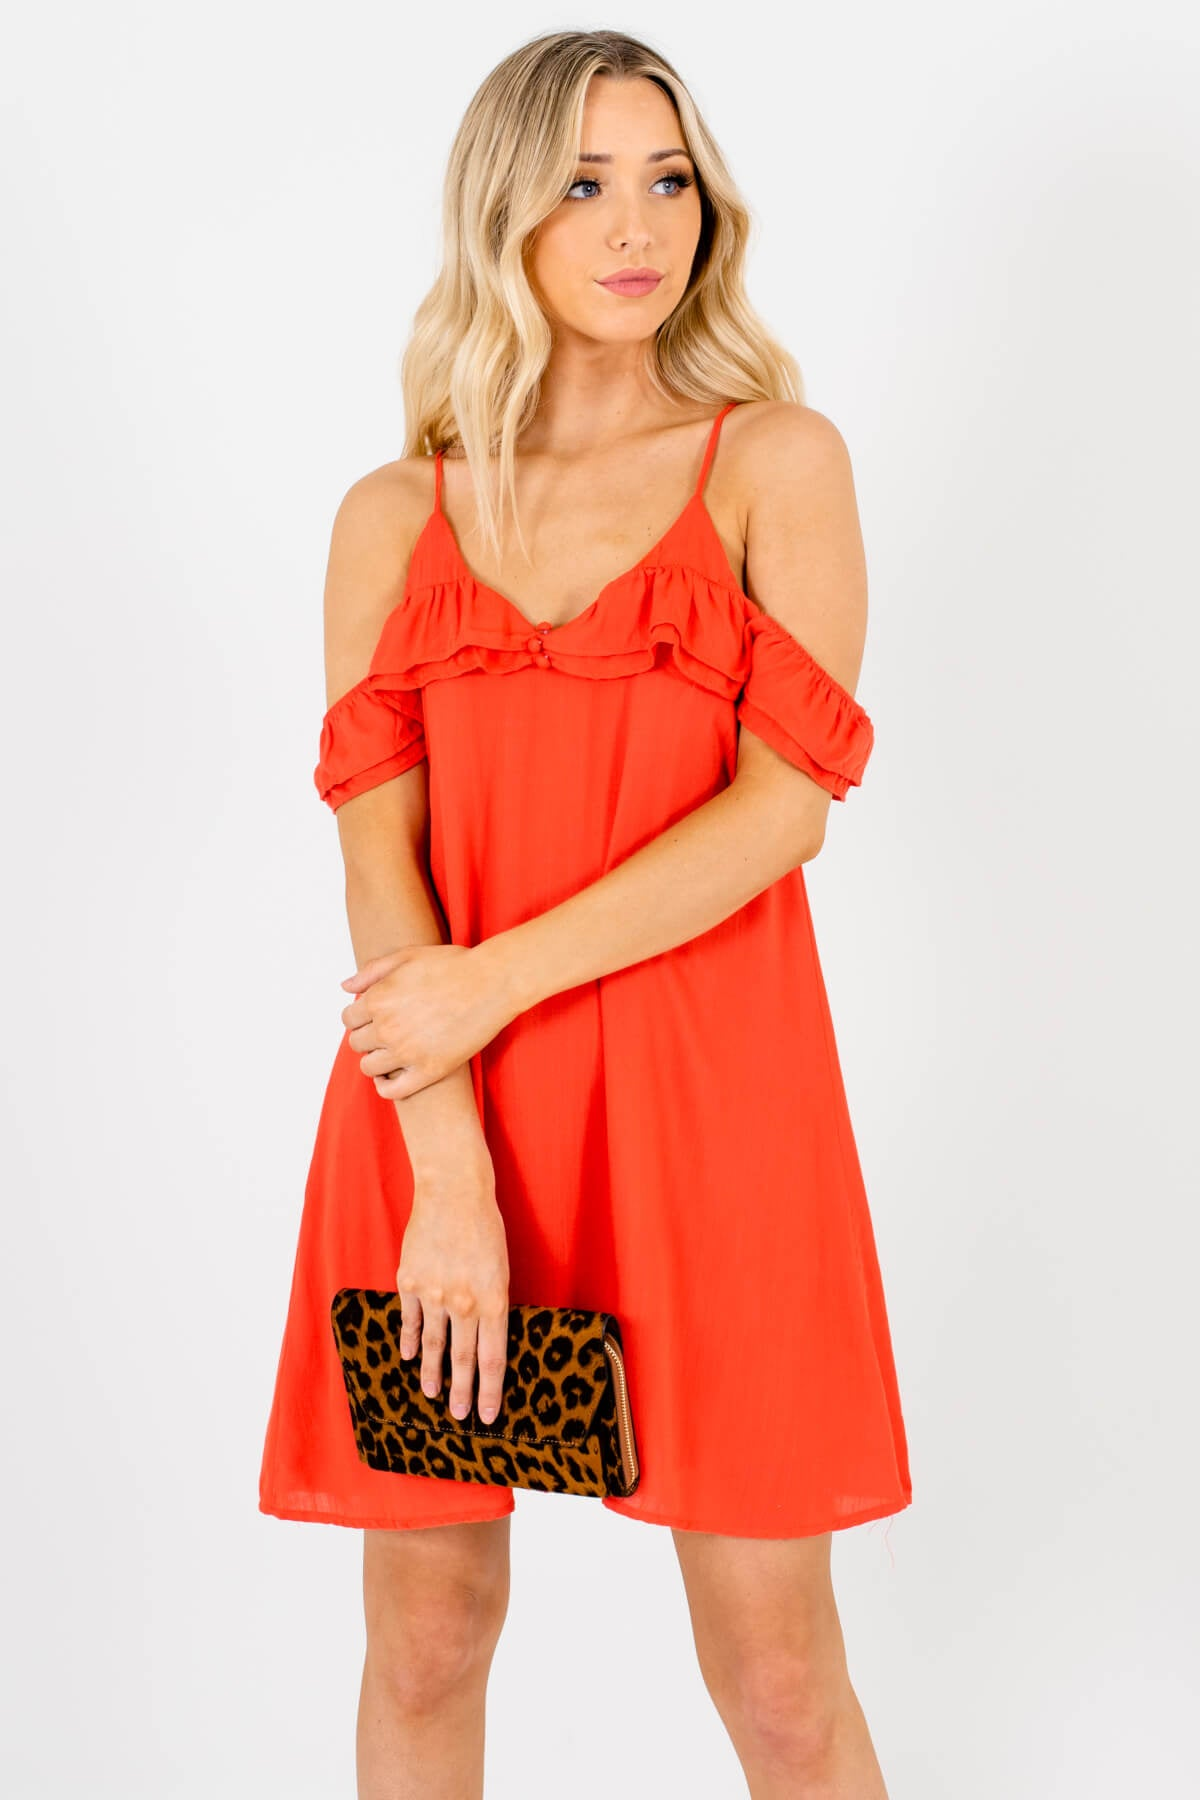 Orange Red Cold Shoulder Style Boutique Mini Dresses for Women